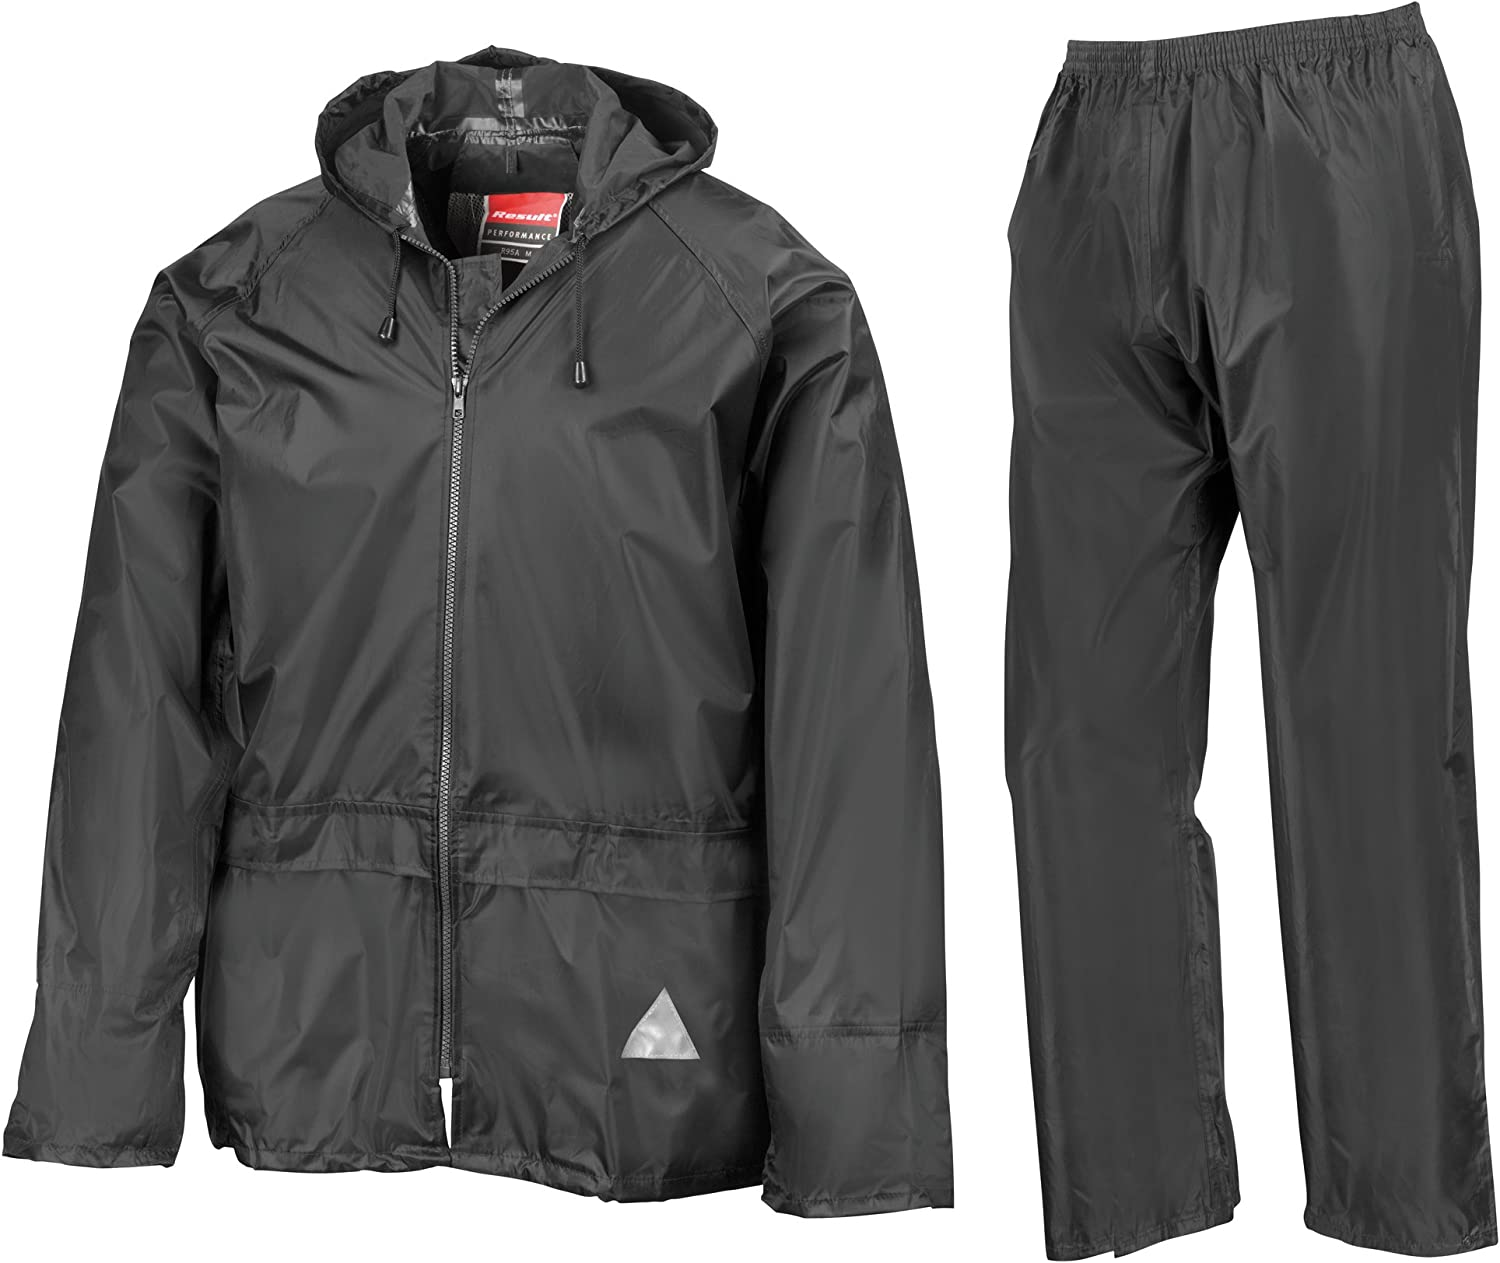 Result Heavyweight Waterproof Jacket & Trouser Set impermeable para Hombre